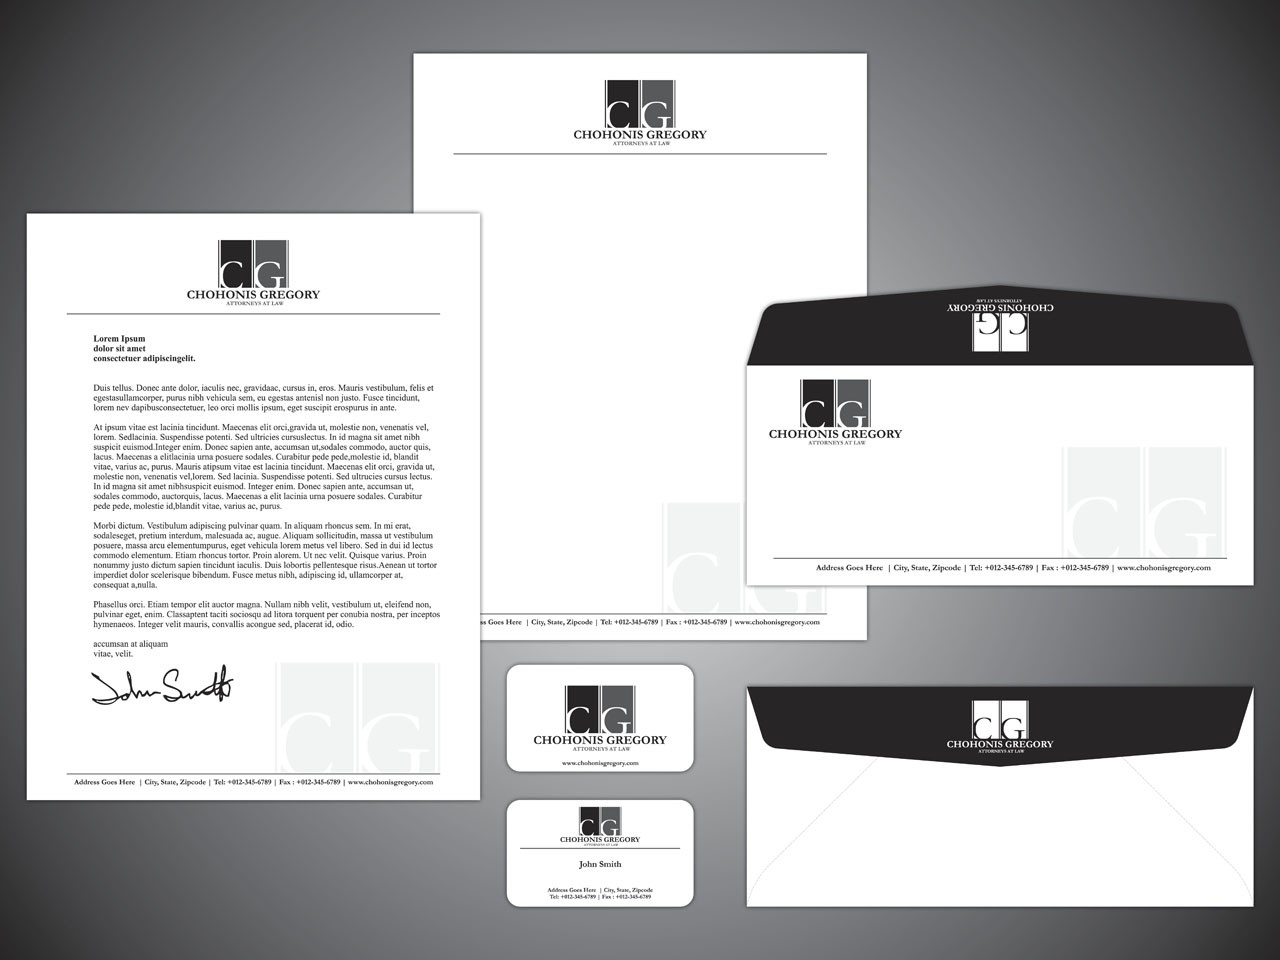 New letterhead wanted for Chohonis Gregory, PA